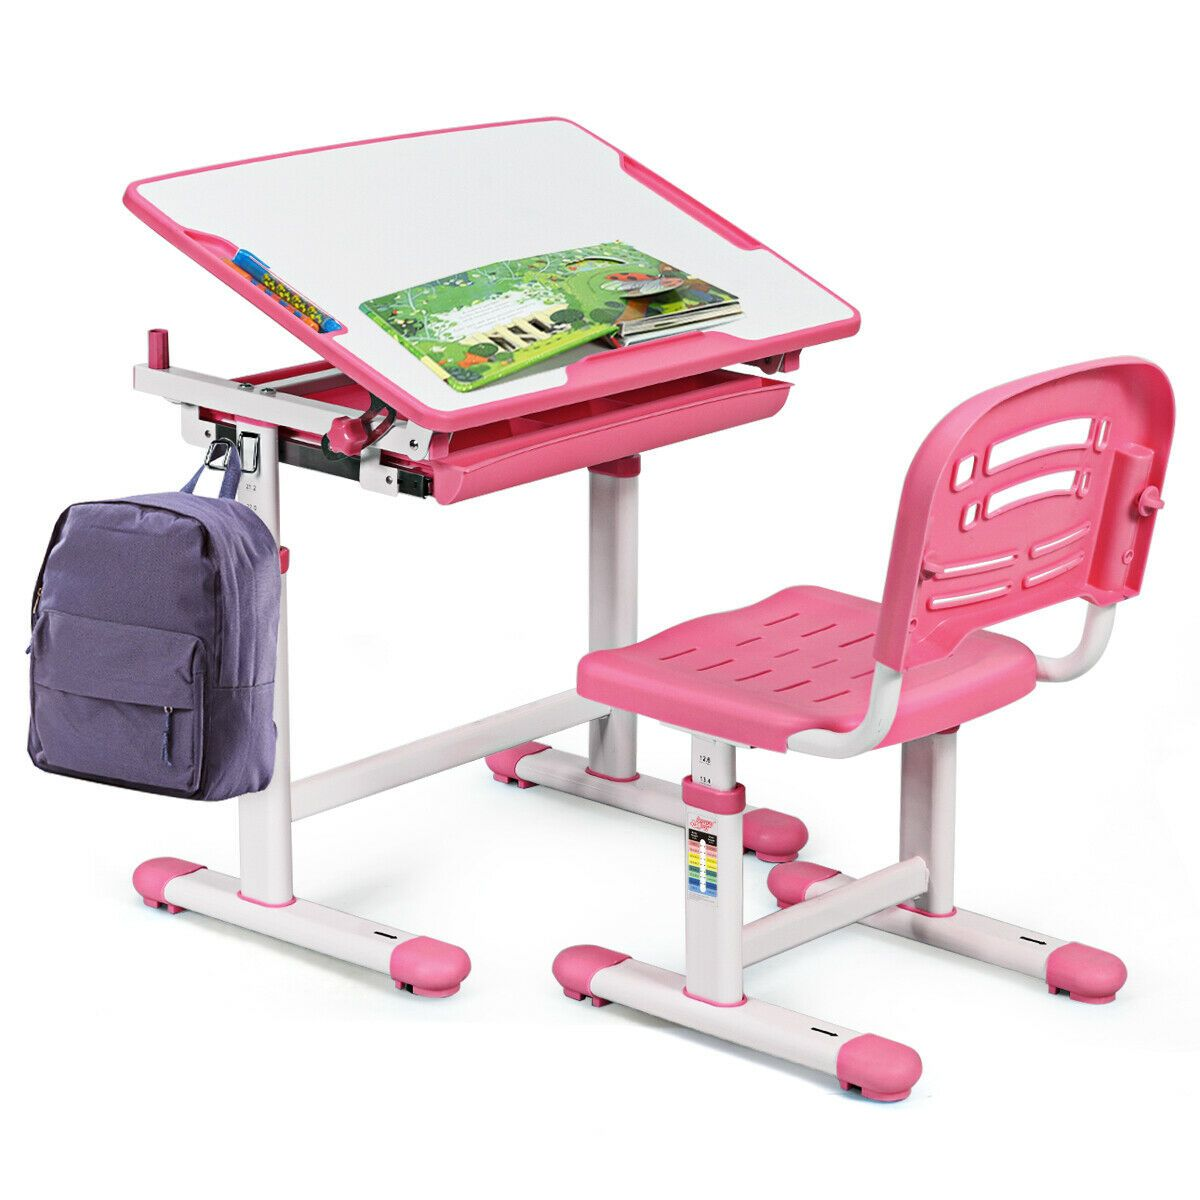 Gymax Height Adjustable Children S Desk Chair Set Multifunctional Study Drawing Pink Walmart Com In 2020 Childrens Desk And Chair Desk And Chair Set Kids Study Table